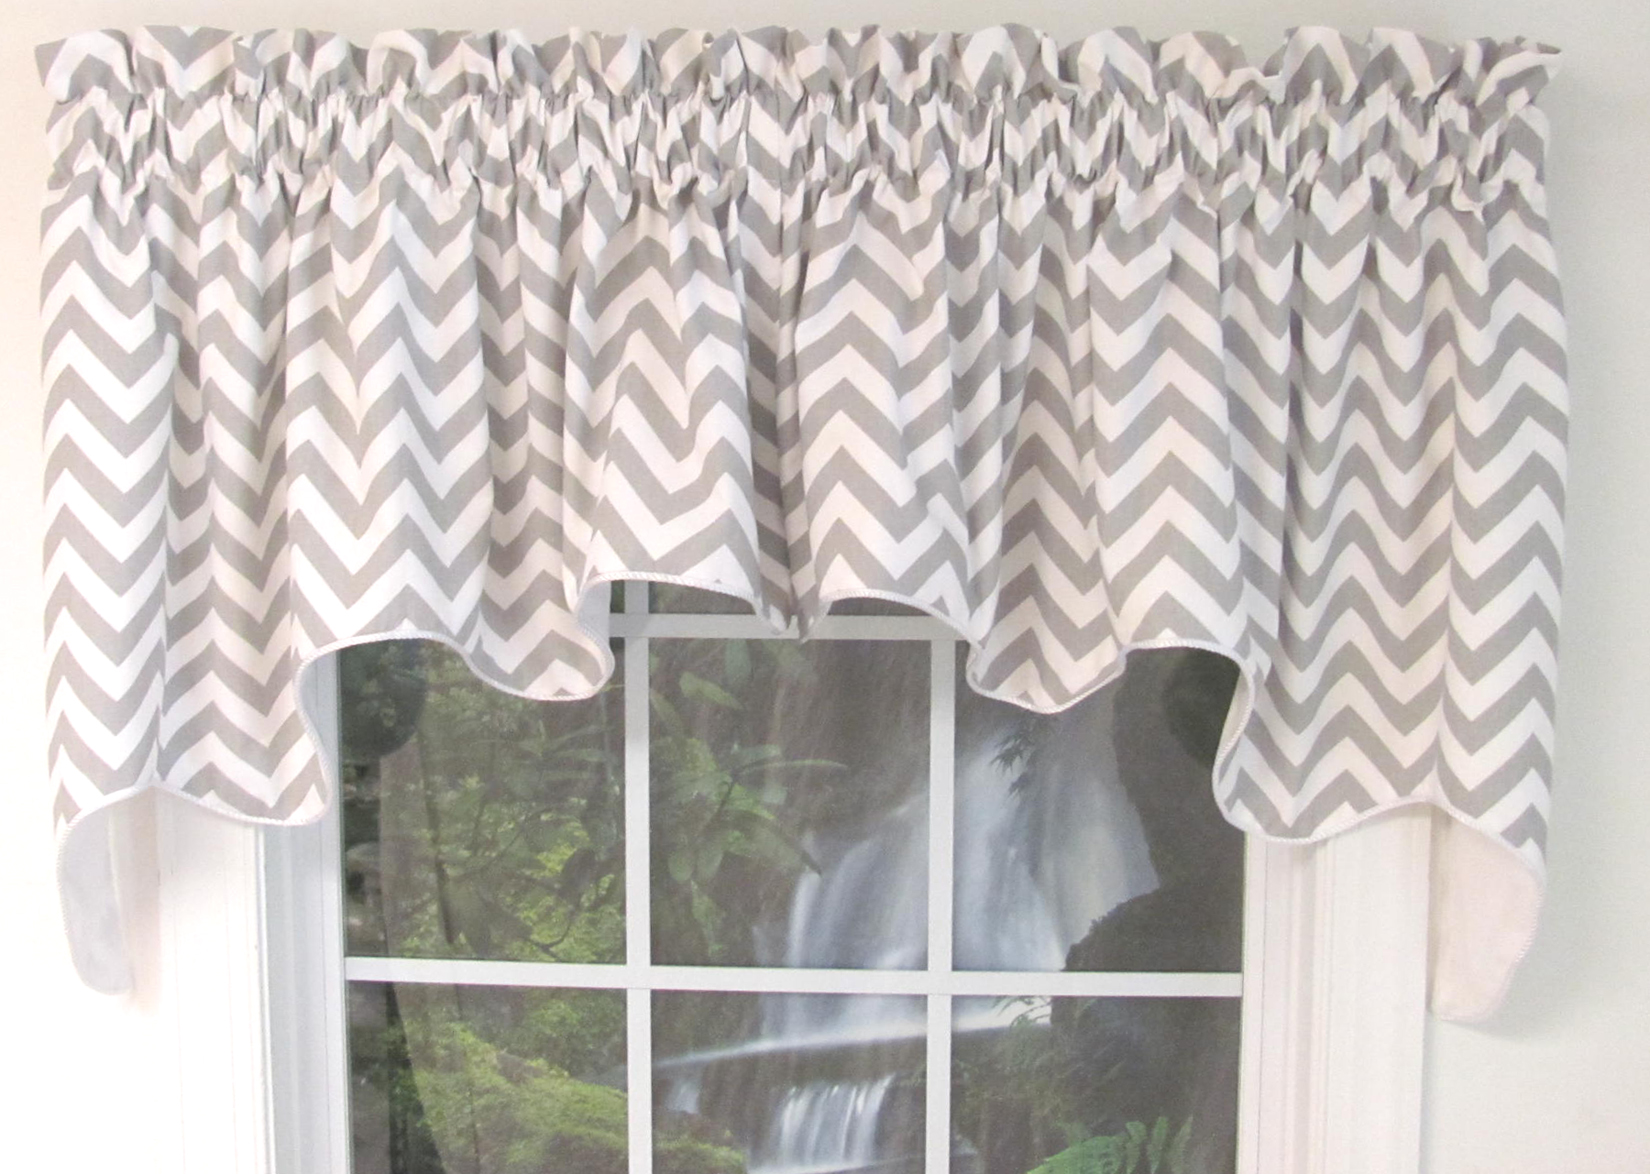 clearance inch penneys country kitchen valances beyond sears spectacular and bed awesome window jc swag valance curtains bath penney jcpenney waverly target tier